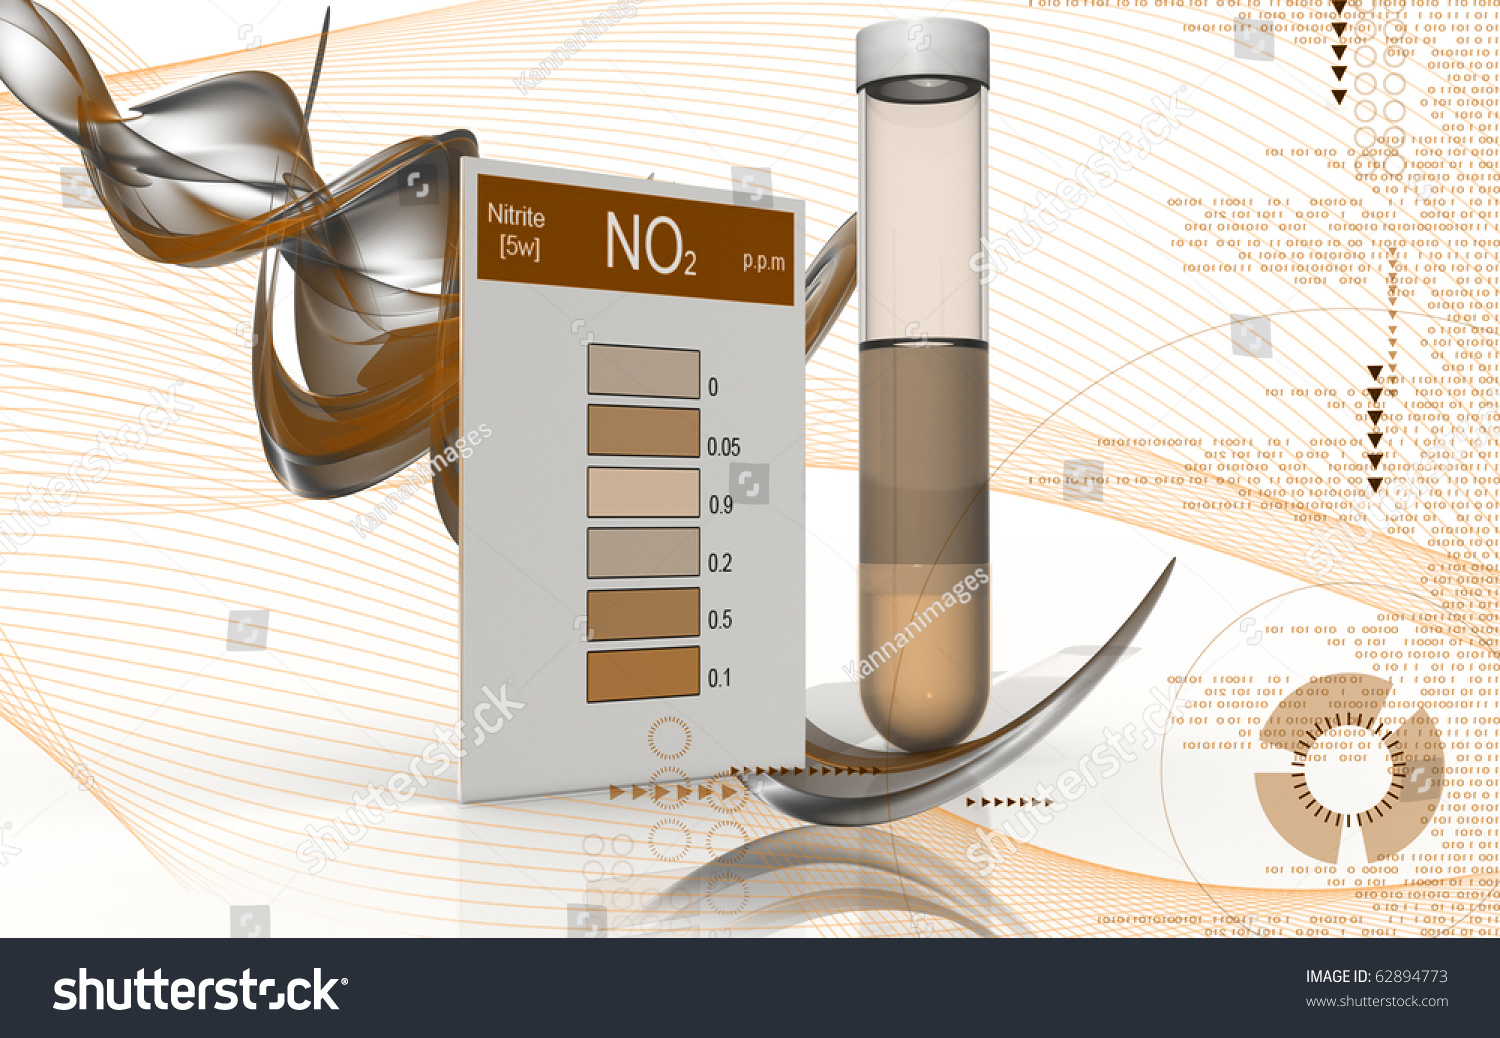 Digital illustration nitrite test colour background stock digital illustration of nitrite test in colour background buycottarizona